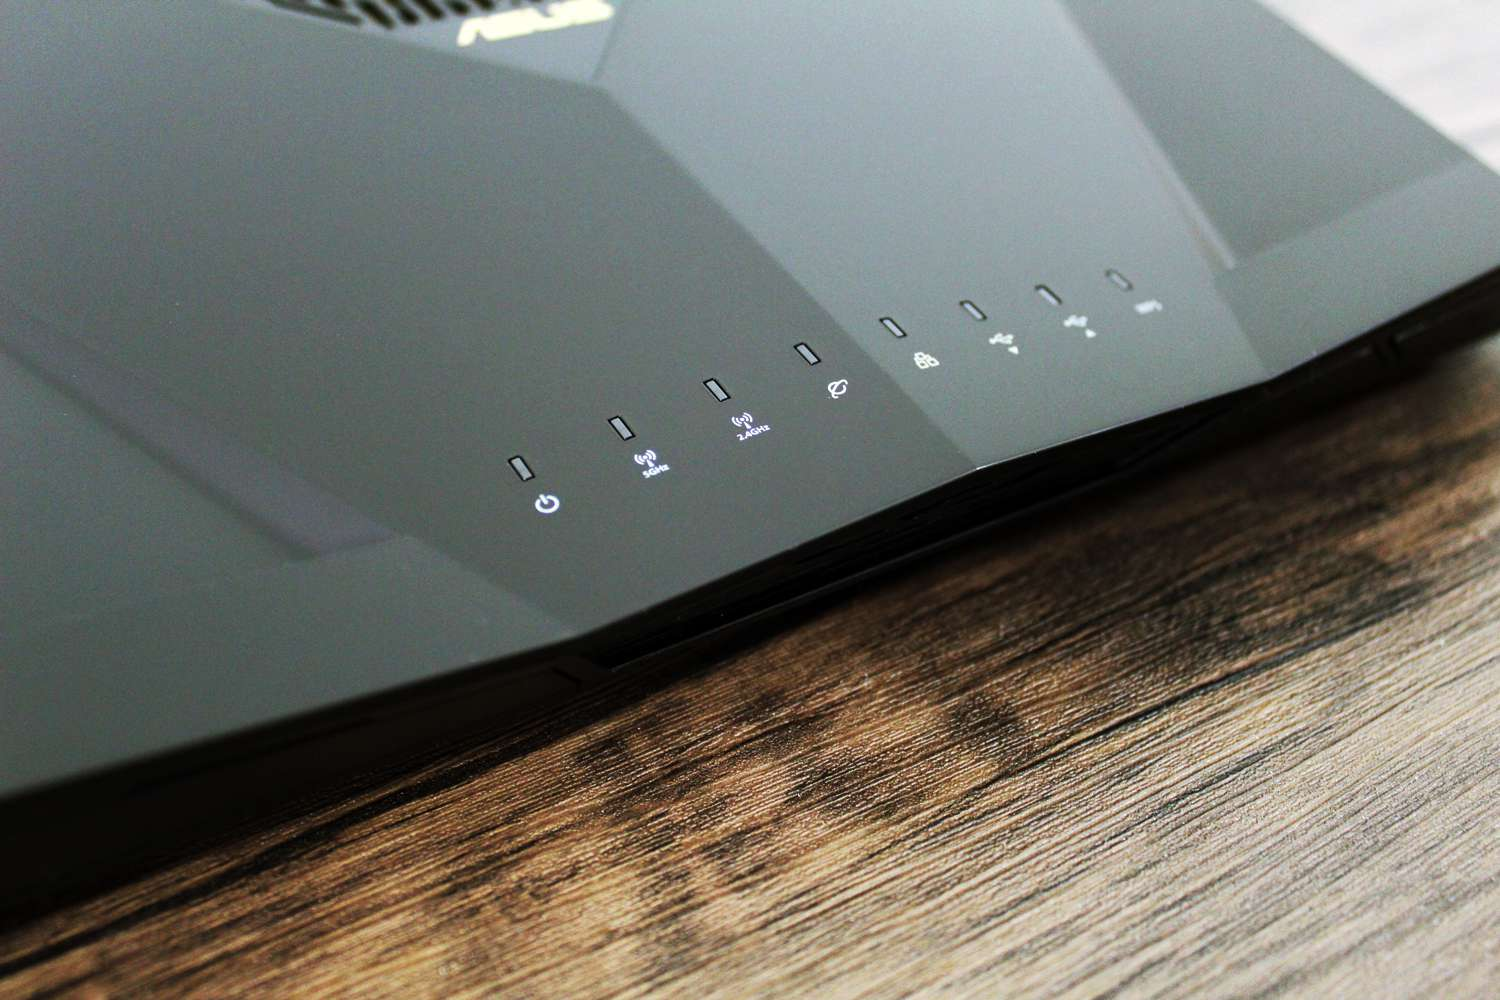 Asus Dual Band AX6000 Smart Wi-Fi Router